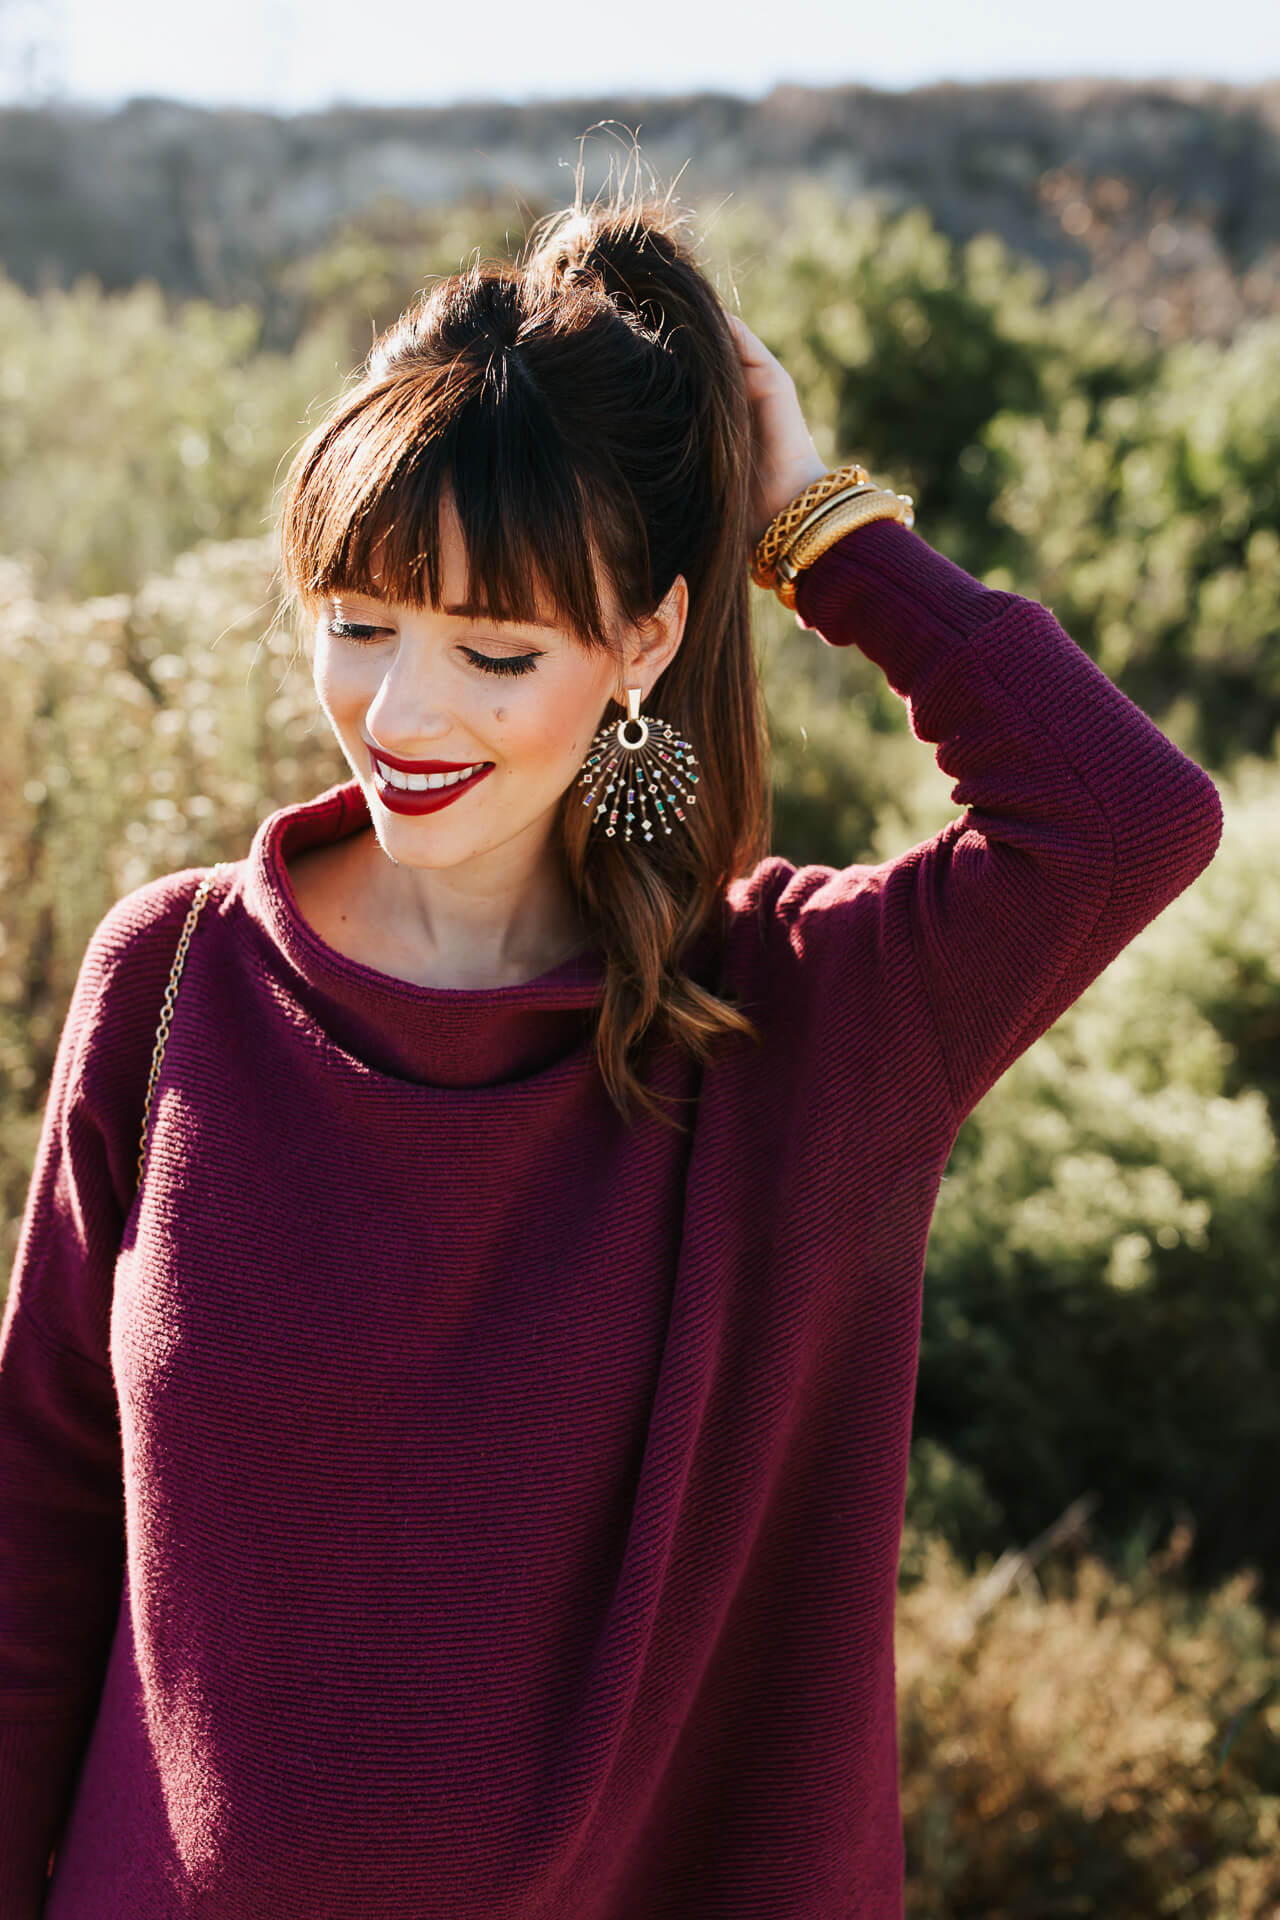 Statement earrings with a high ponytail are such a fun look! - M Loves M @marmar